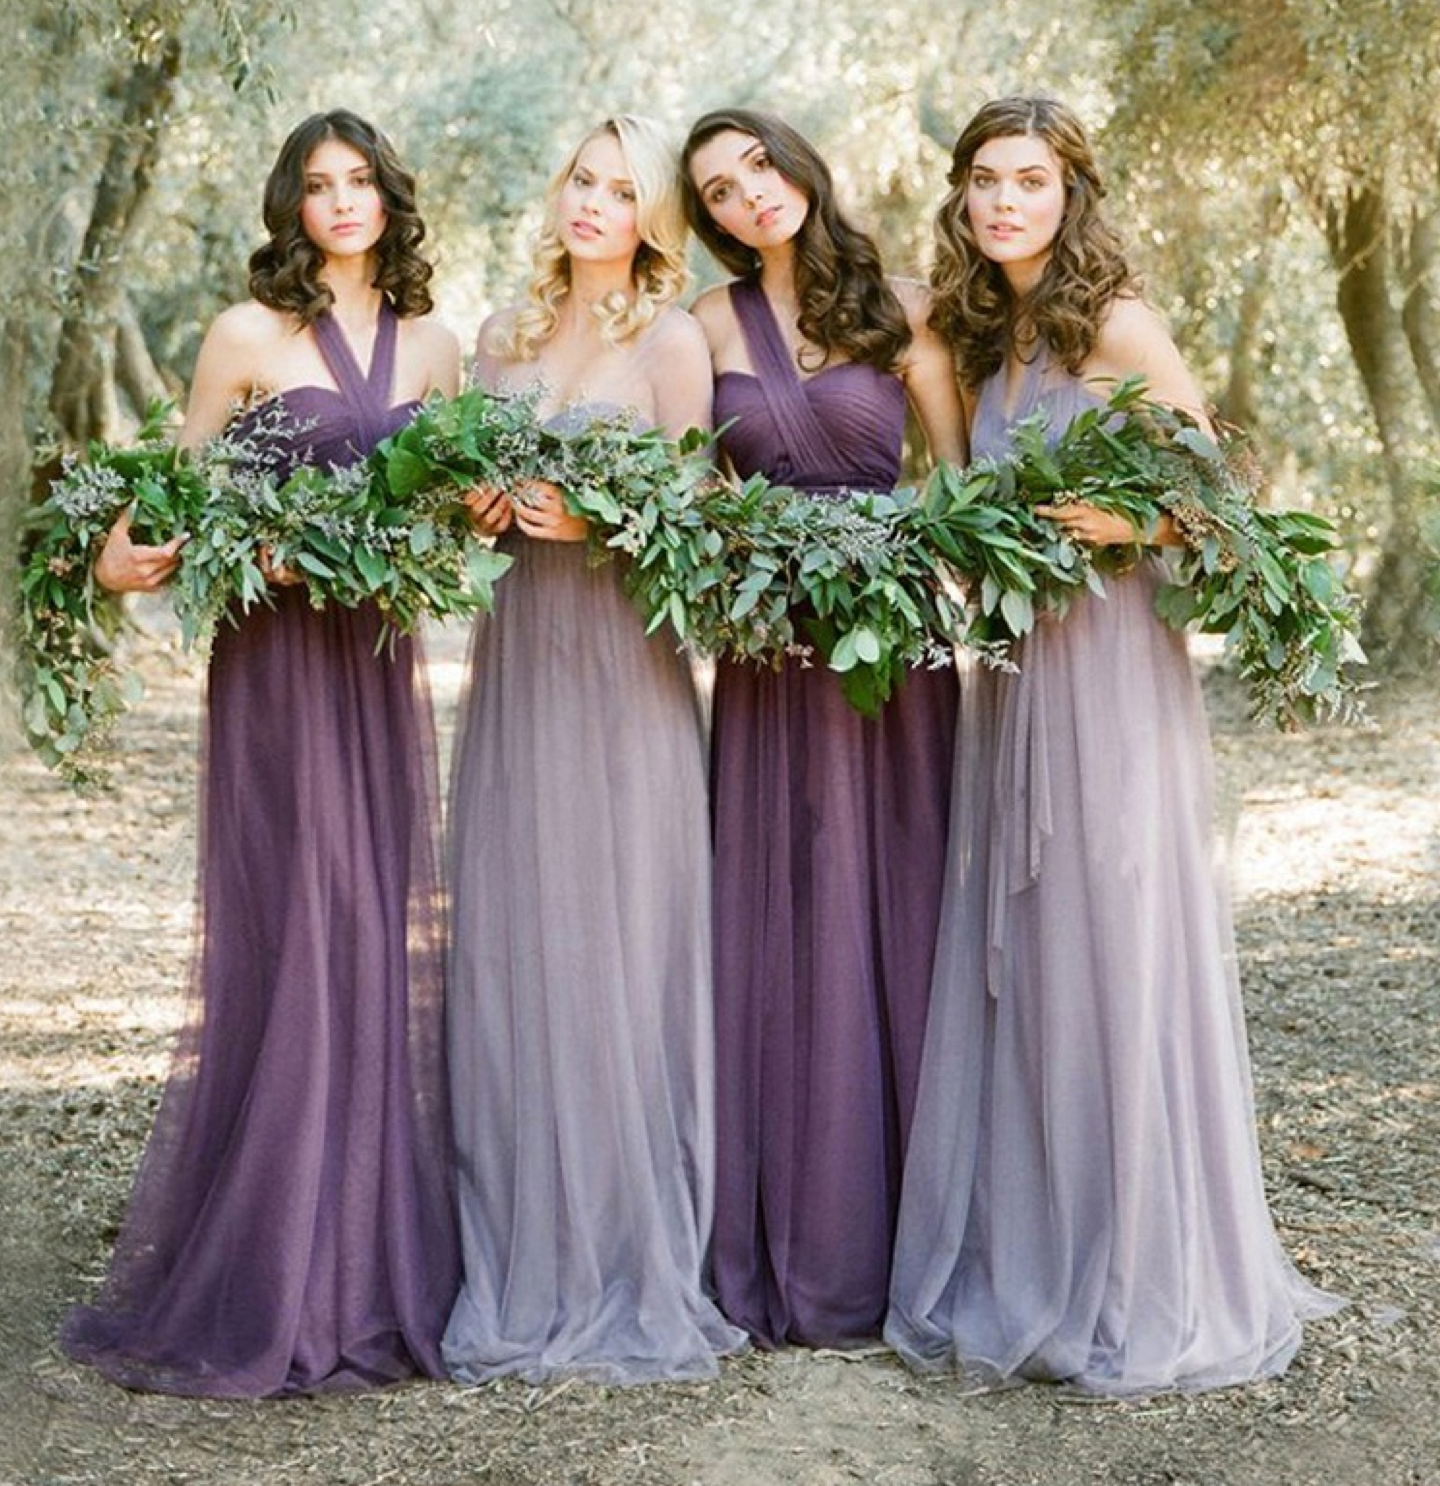 Pin by marie k on mariage pinterest fashion tulle custom made bridesmaid dress convertible dresses a line purple maid of honor ruffle cheap 2015 promotion bridesmaid gown ombrellifo Choice Image